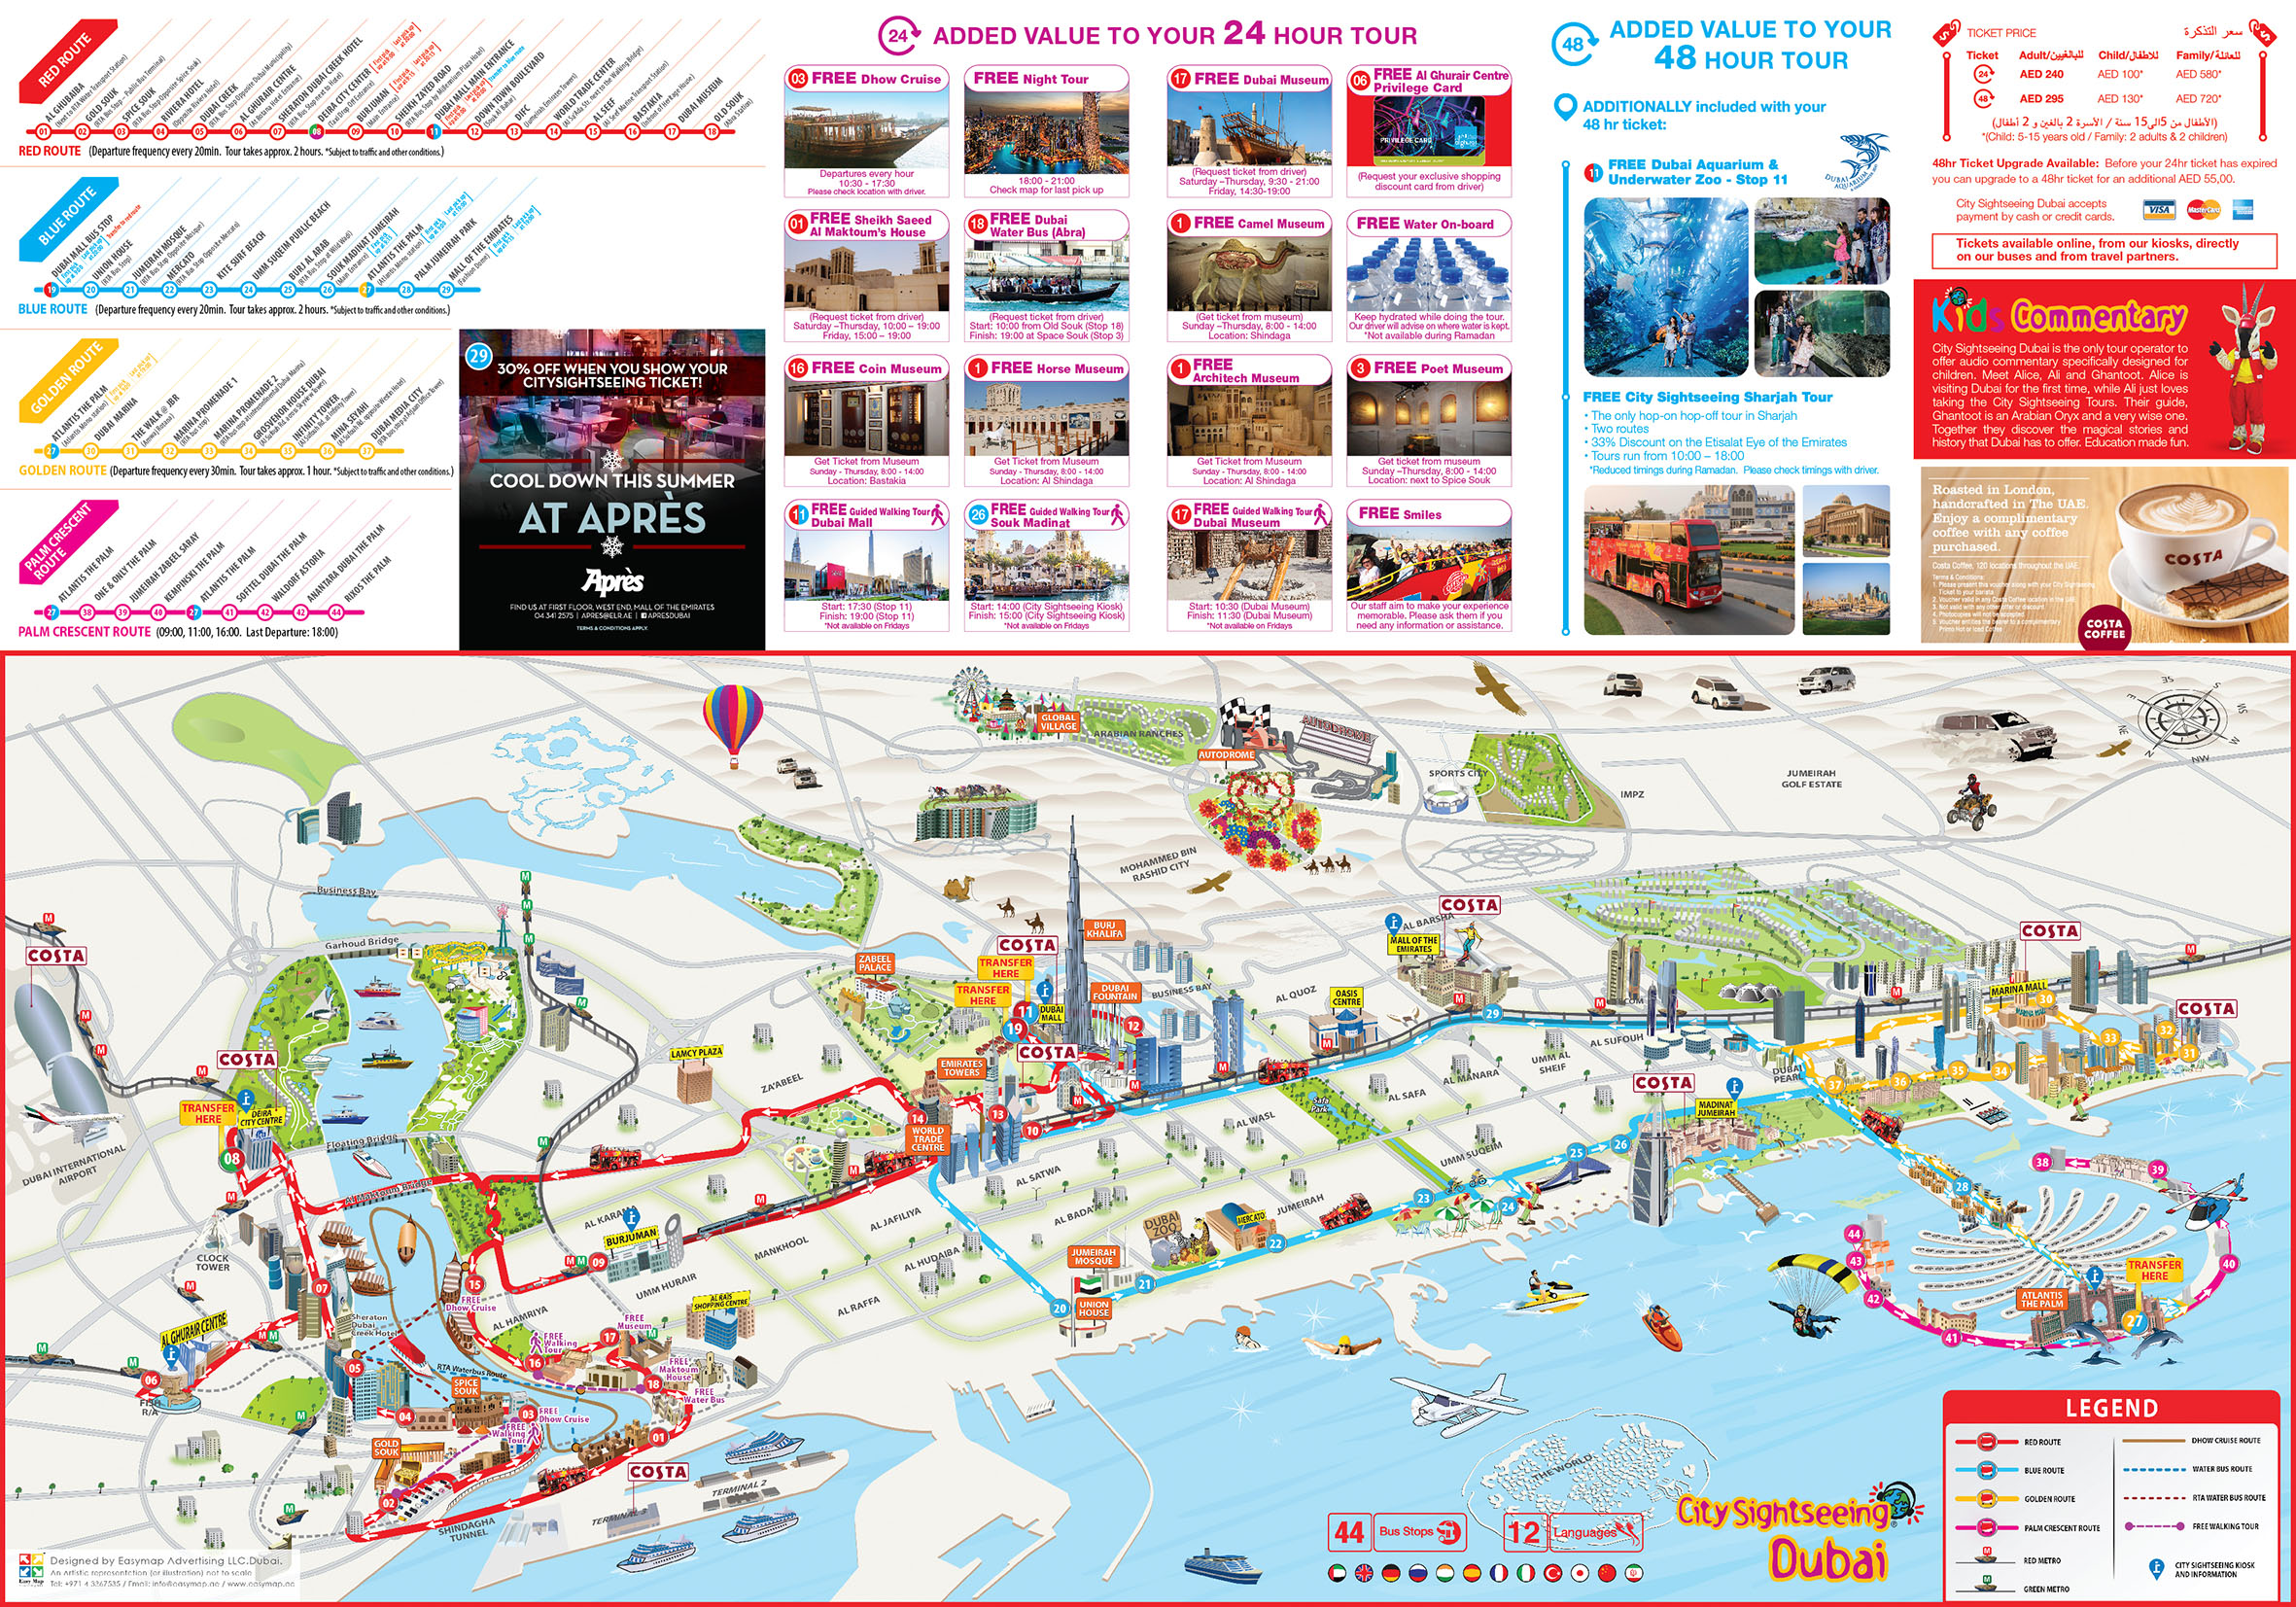 Dubai City Sightseeing Bus Map